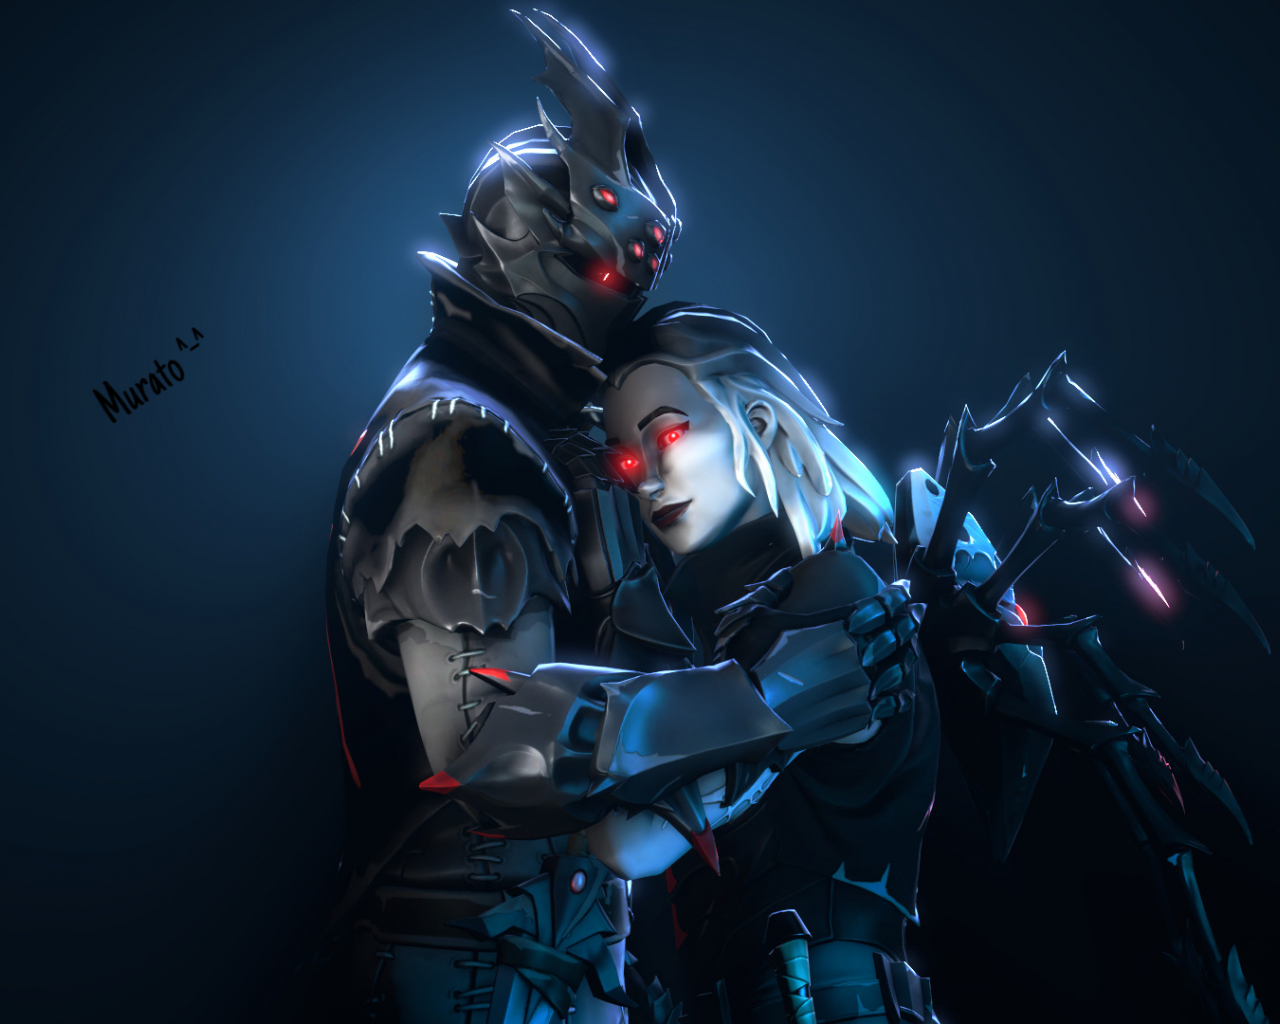 Free Download Fortnite Knights Outfits Awesome Game Art By Muratothebandit 1920x1080 For Your Desktop Mobile Tablet Explore 17 Scourge Fortnite Wallpapers Scourge Fortnite Wallpapers Fortnite Wallpapers Fortnite Wallpaper